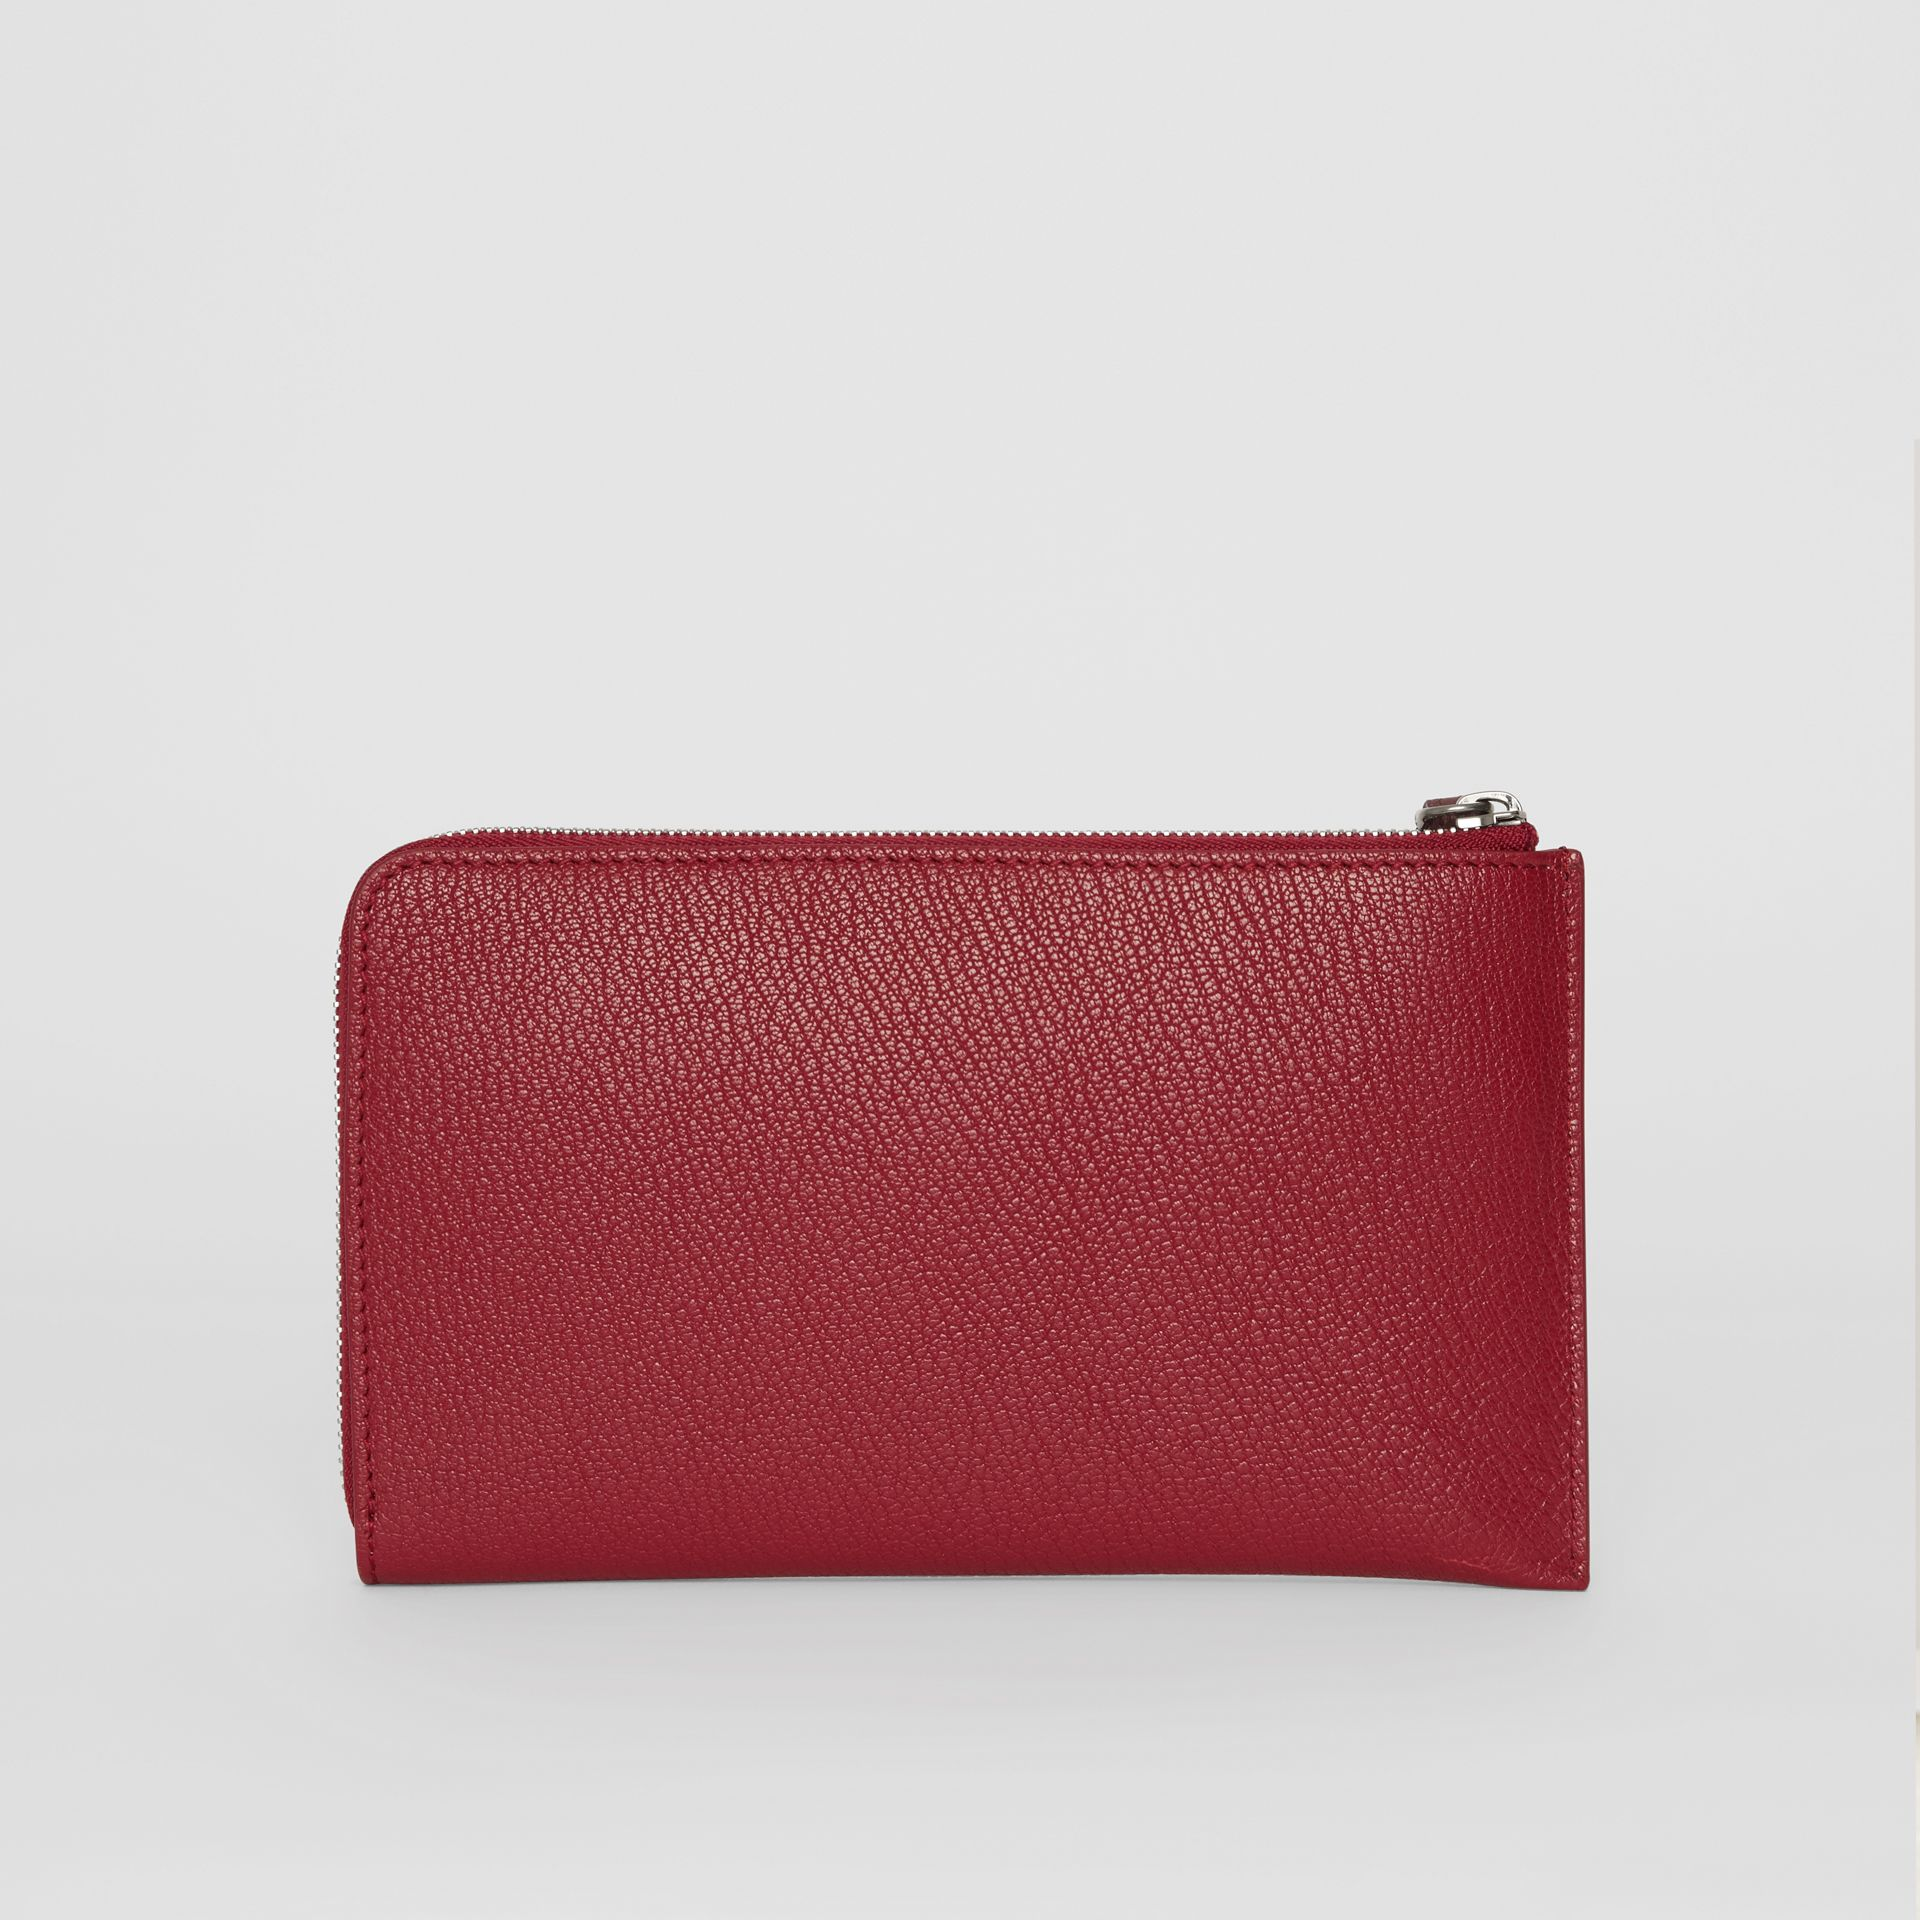 Two-tone Grainy Leather Travel Wallet in Crimson - Women | Burberry - gallery image 7